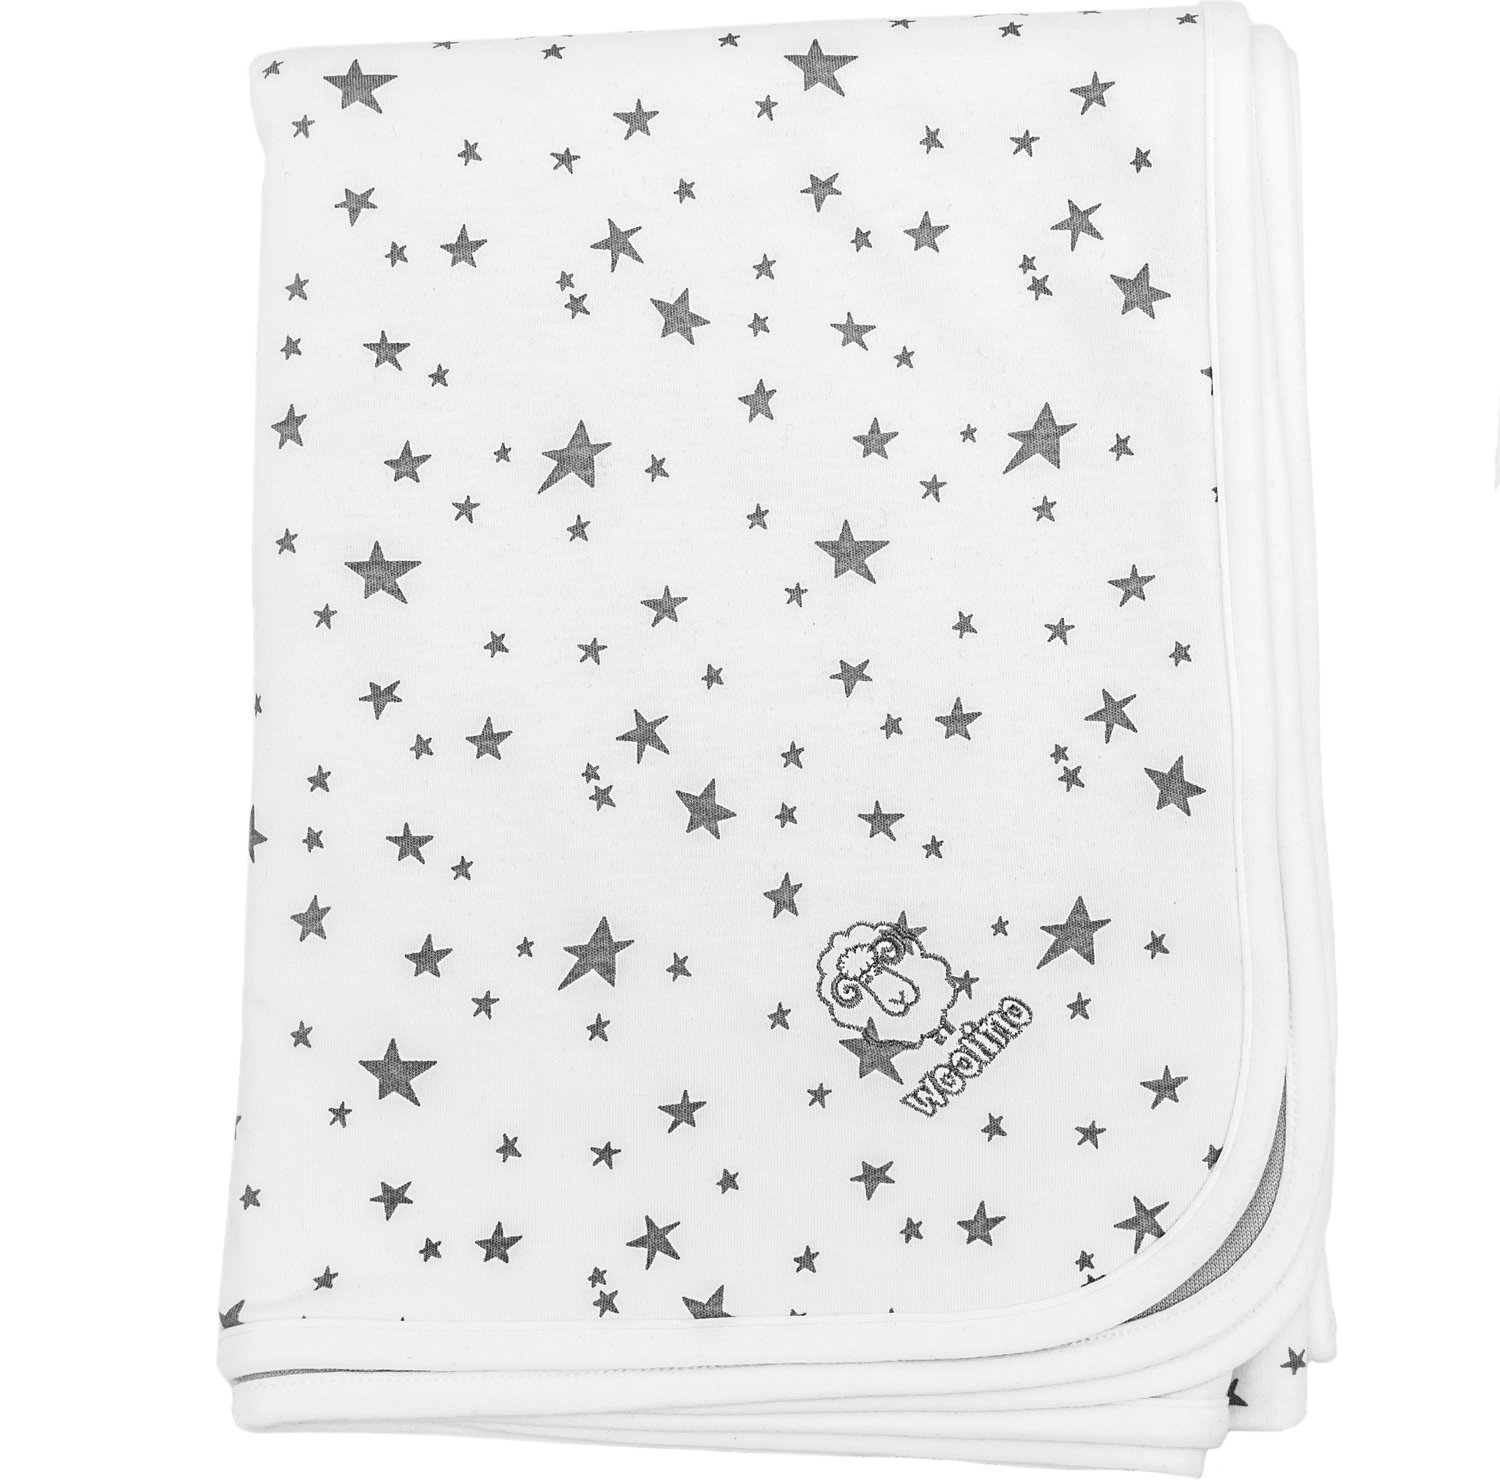 Baby Blanket for Crib or Stroller, Merino Wool Blanket, 40'' x 31.5'', Stars by Woolino (Image #2)